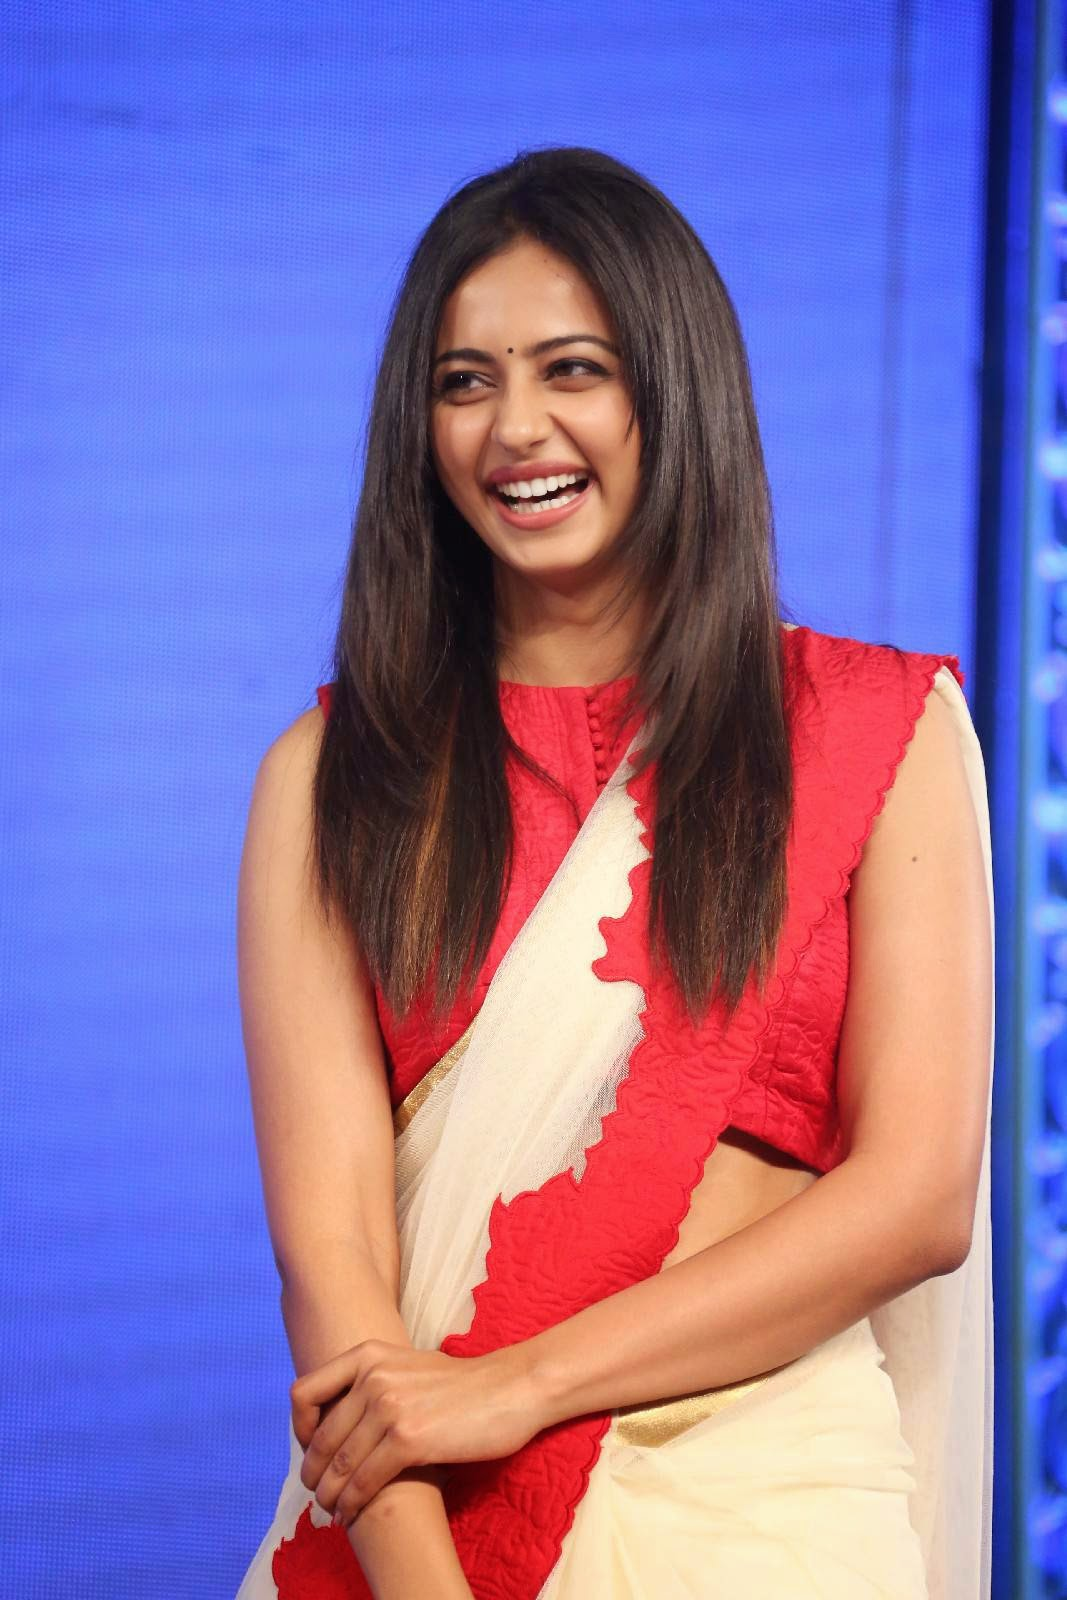 South Indian Hot Girl Rakul Preet Singh Navel Show In Transparent Red Saree